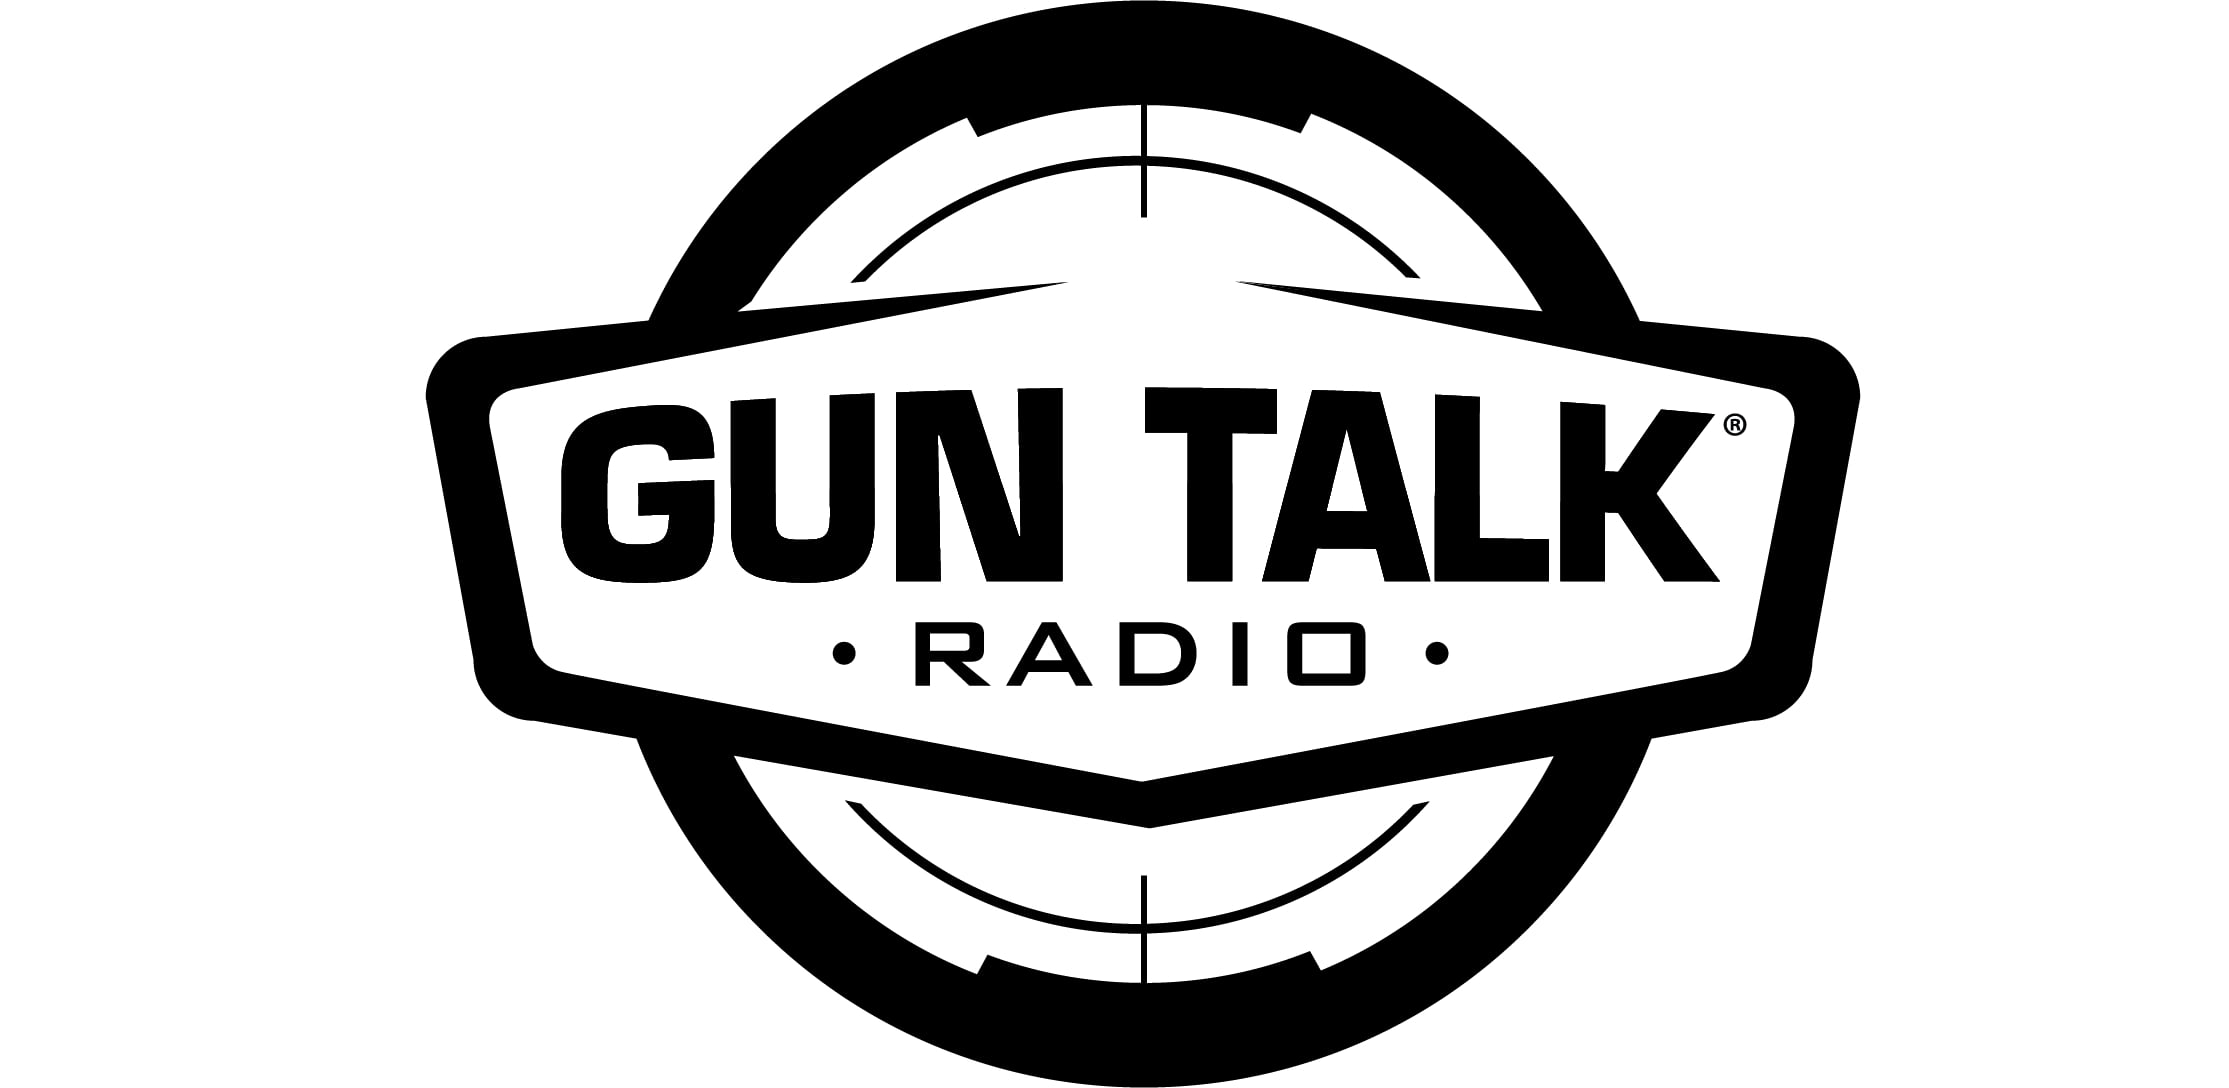 Artwork for First Person Defender; Different Self-Defense Situations: Gun Talk Radio| 3.10.19 After Show